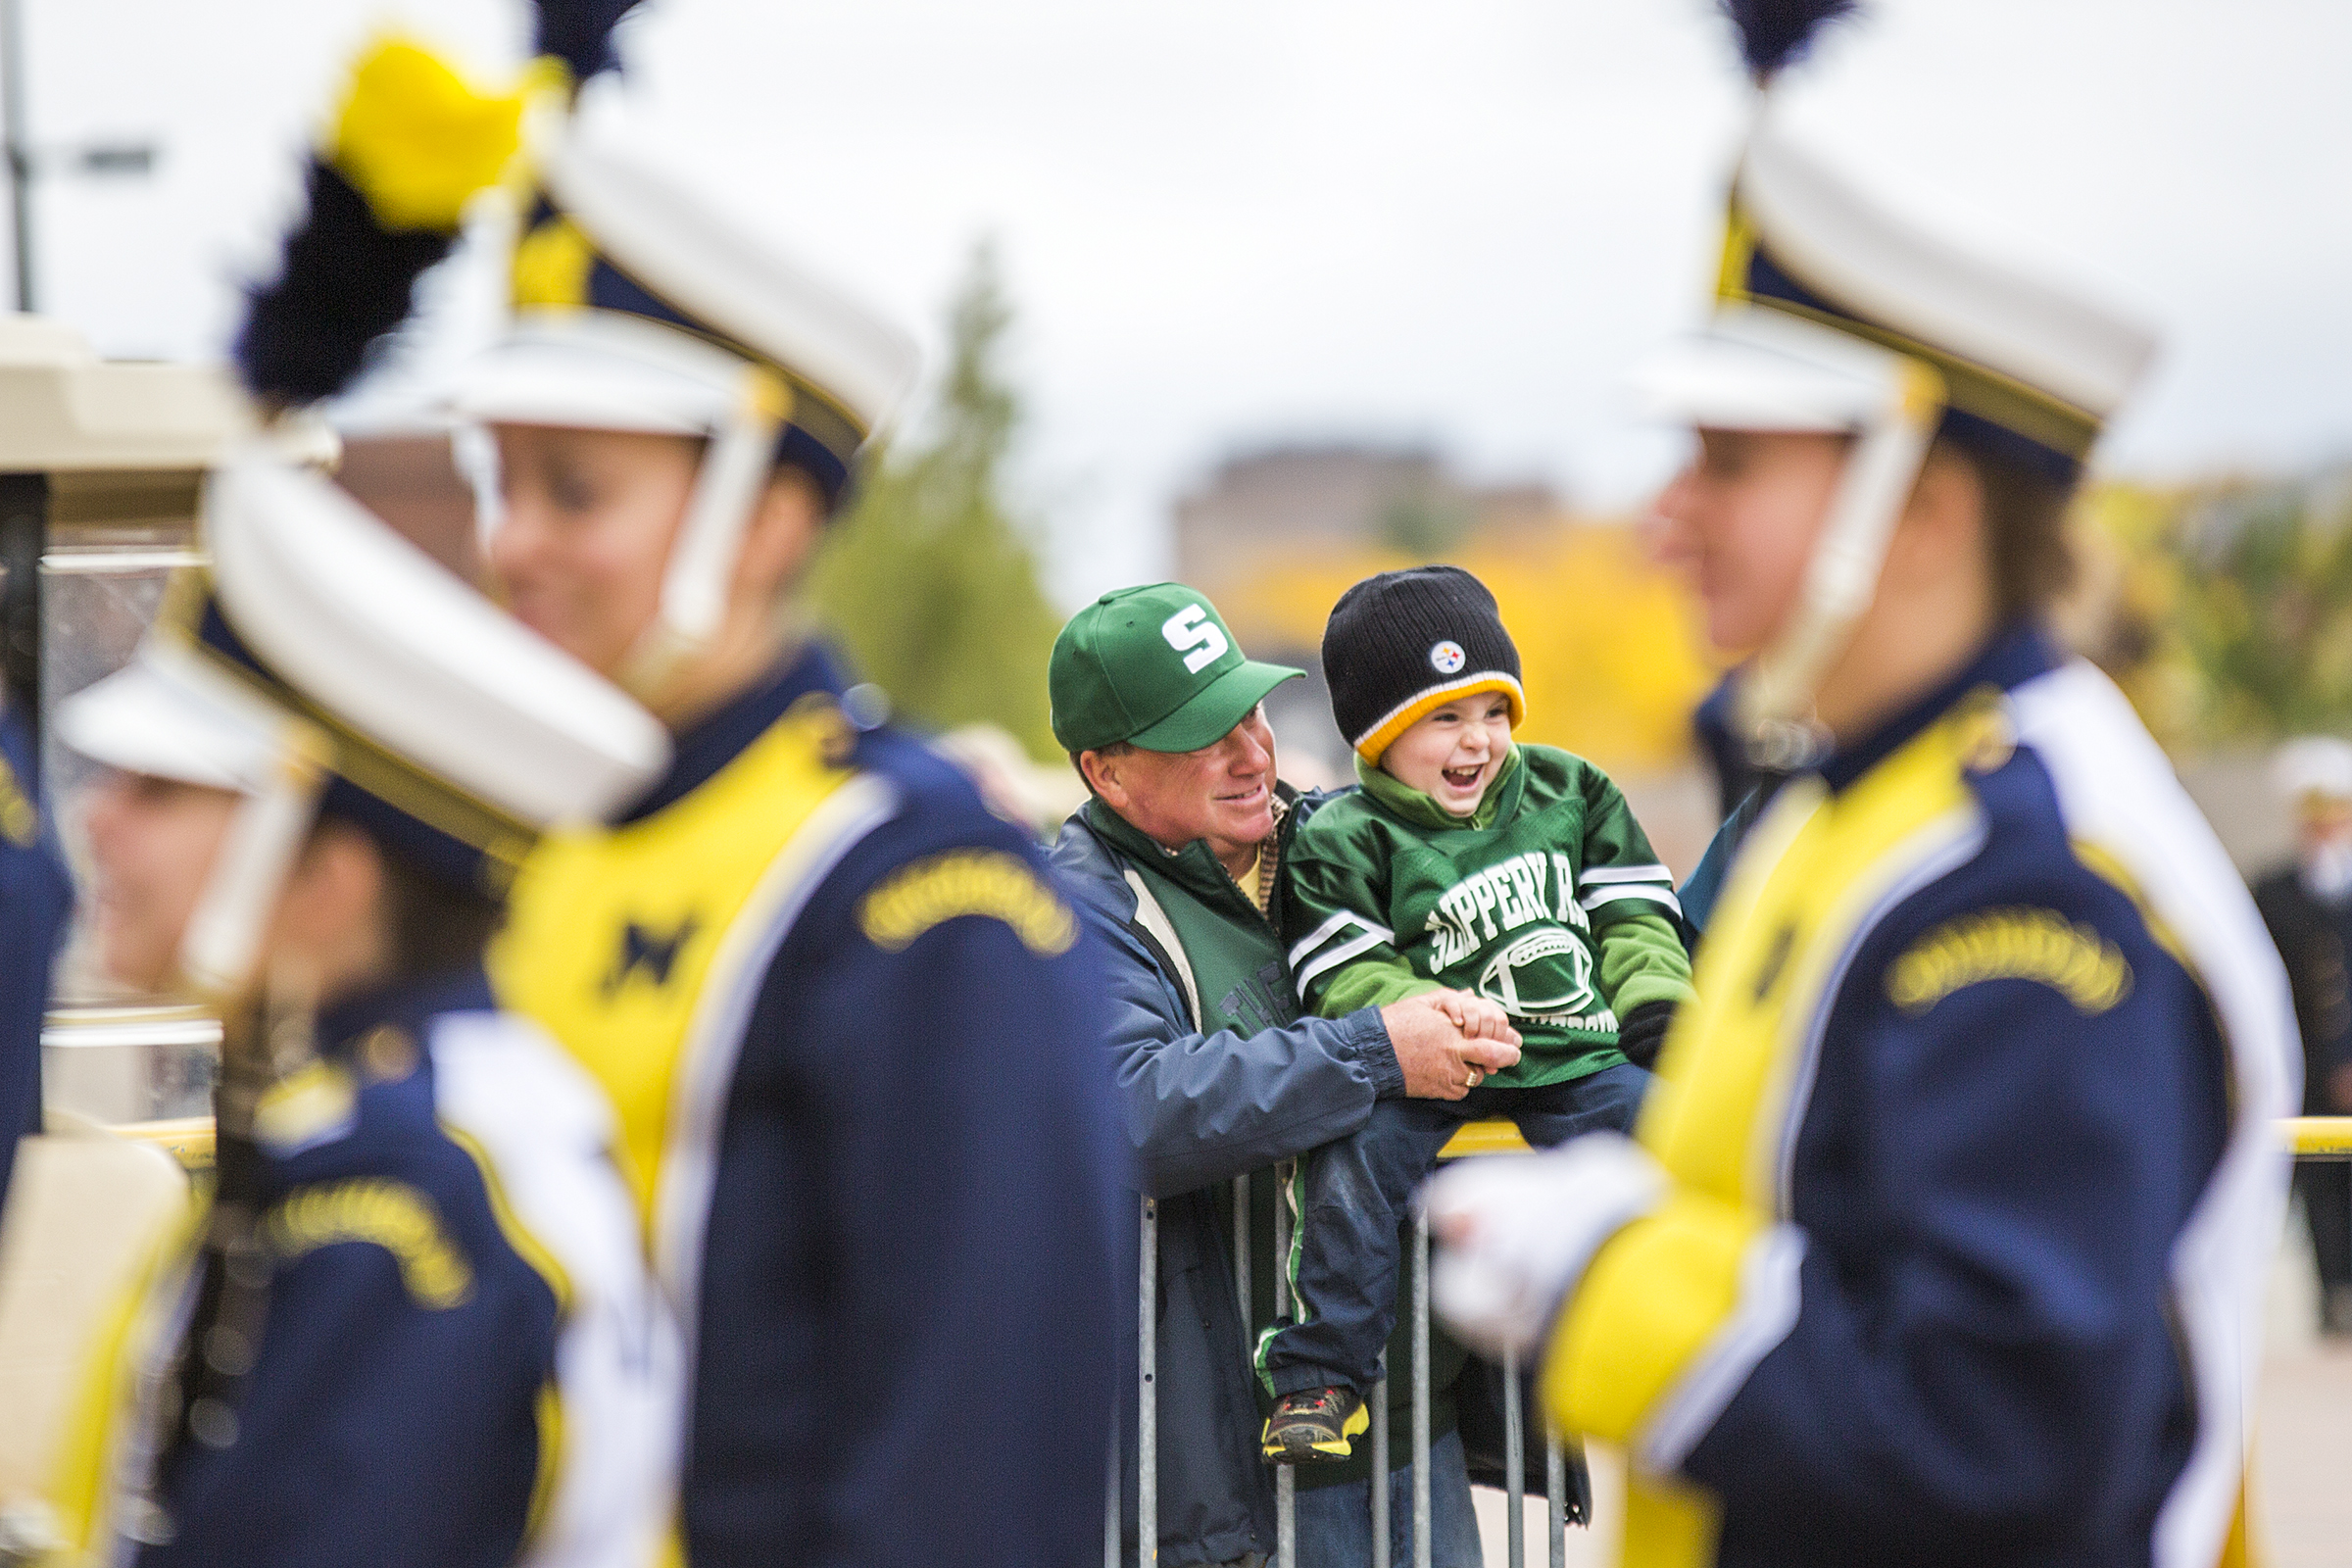 Slippery Rocks fans watch the Michigan marching band enter the Big House during the Slipper Rock vs. Mercyhurst game on October 18, 2014.